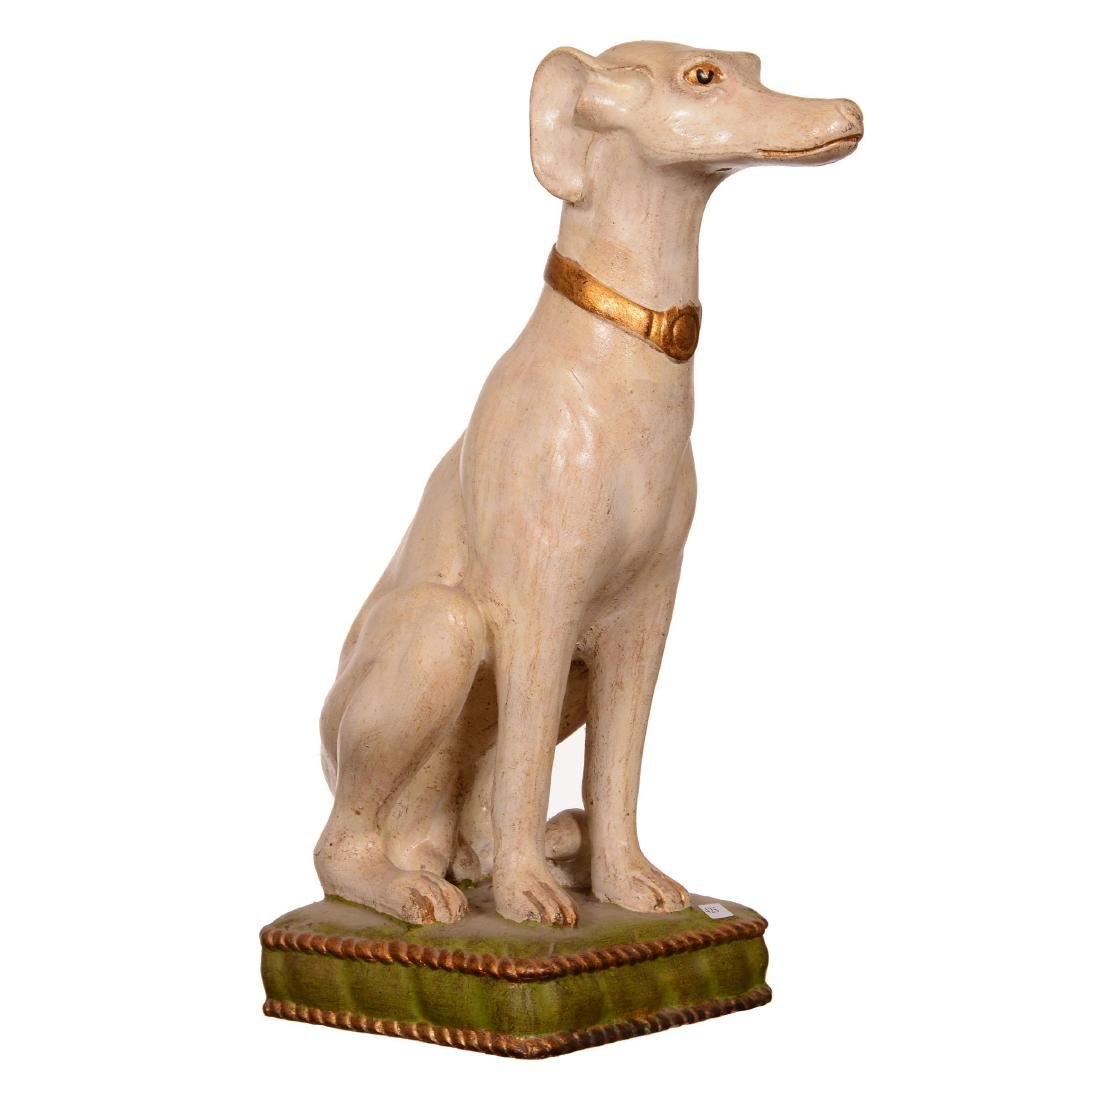 Painted Terra Cotta Figure of Seated Dog